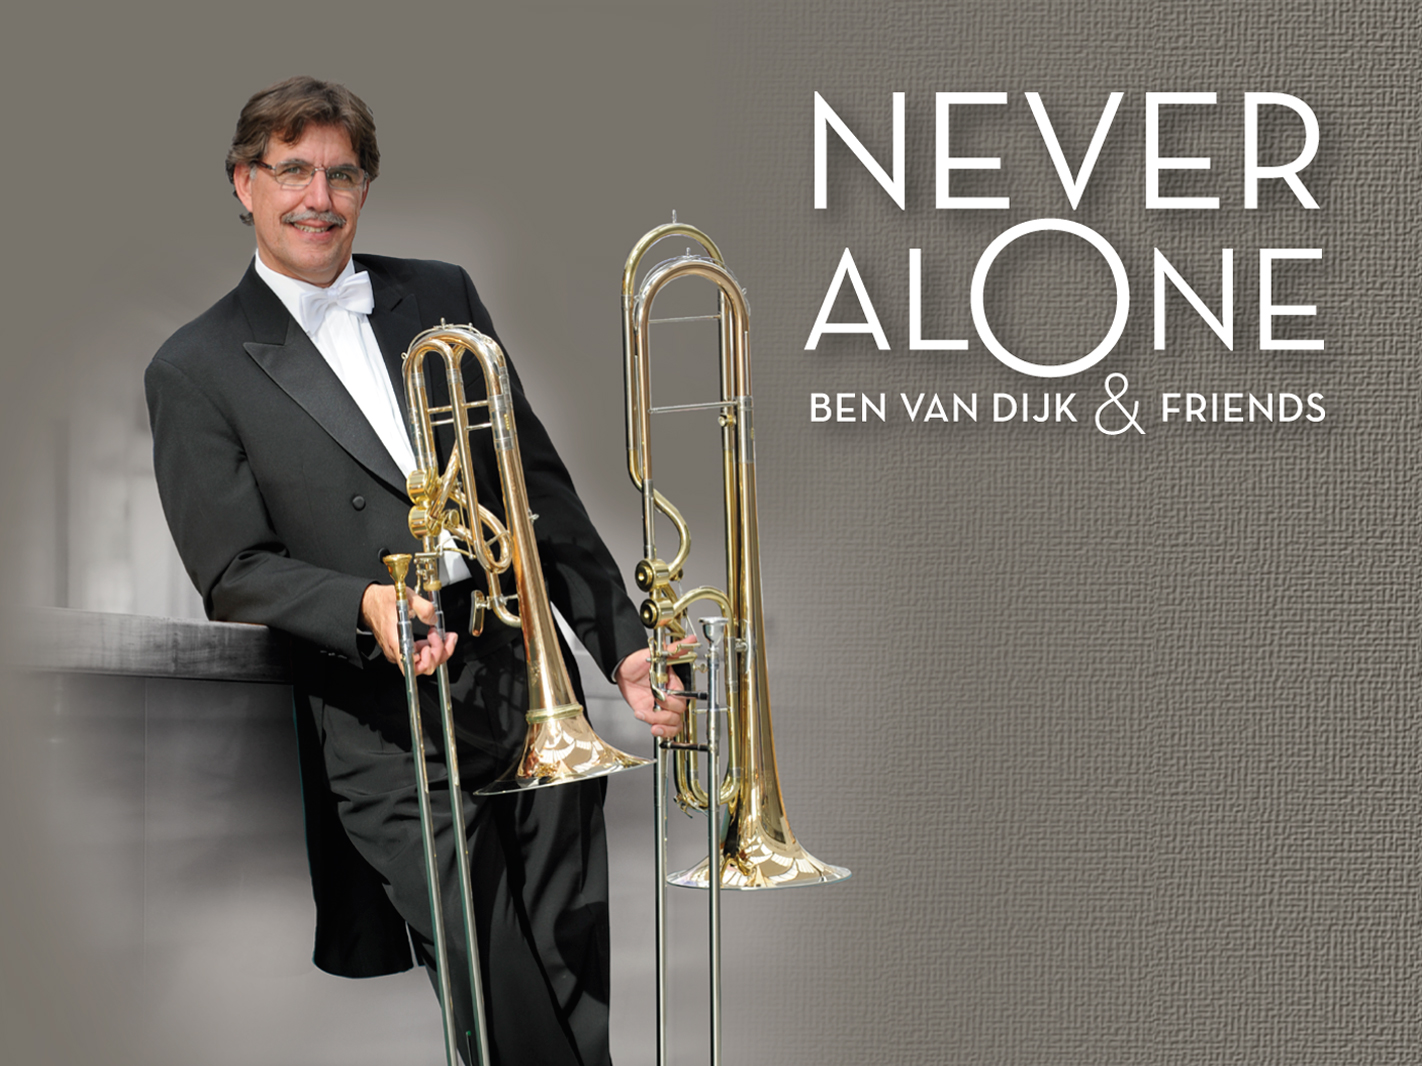 never-alone-ben-van-dijk-4e397cd588c86